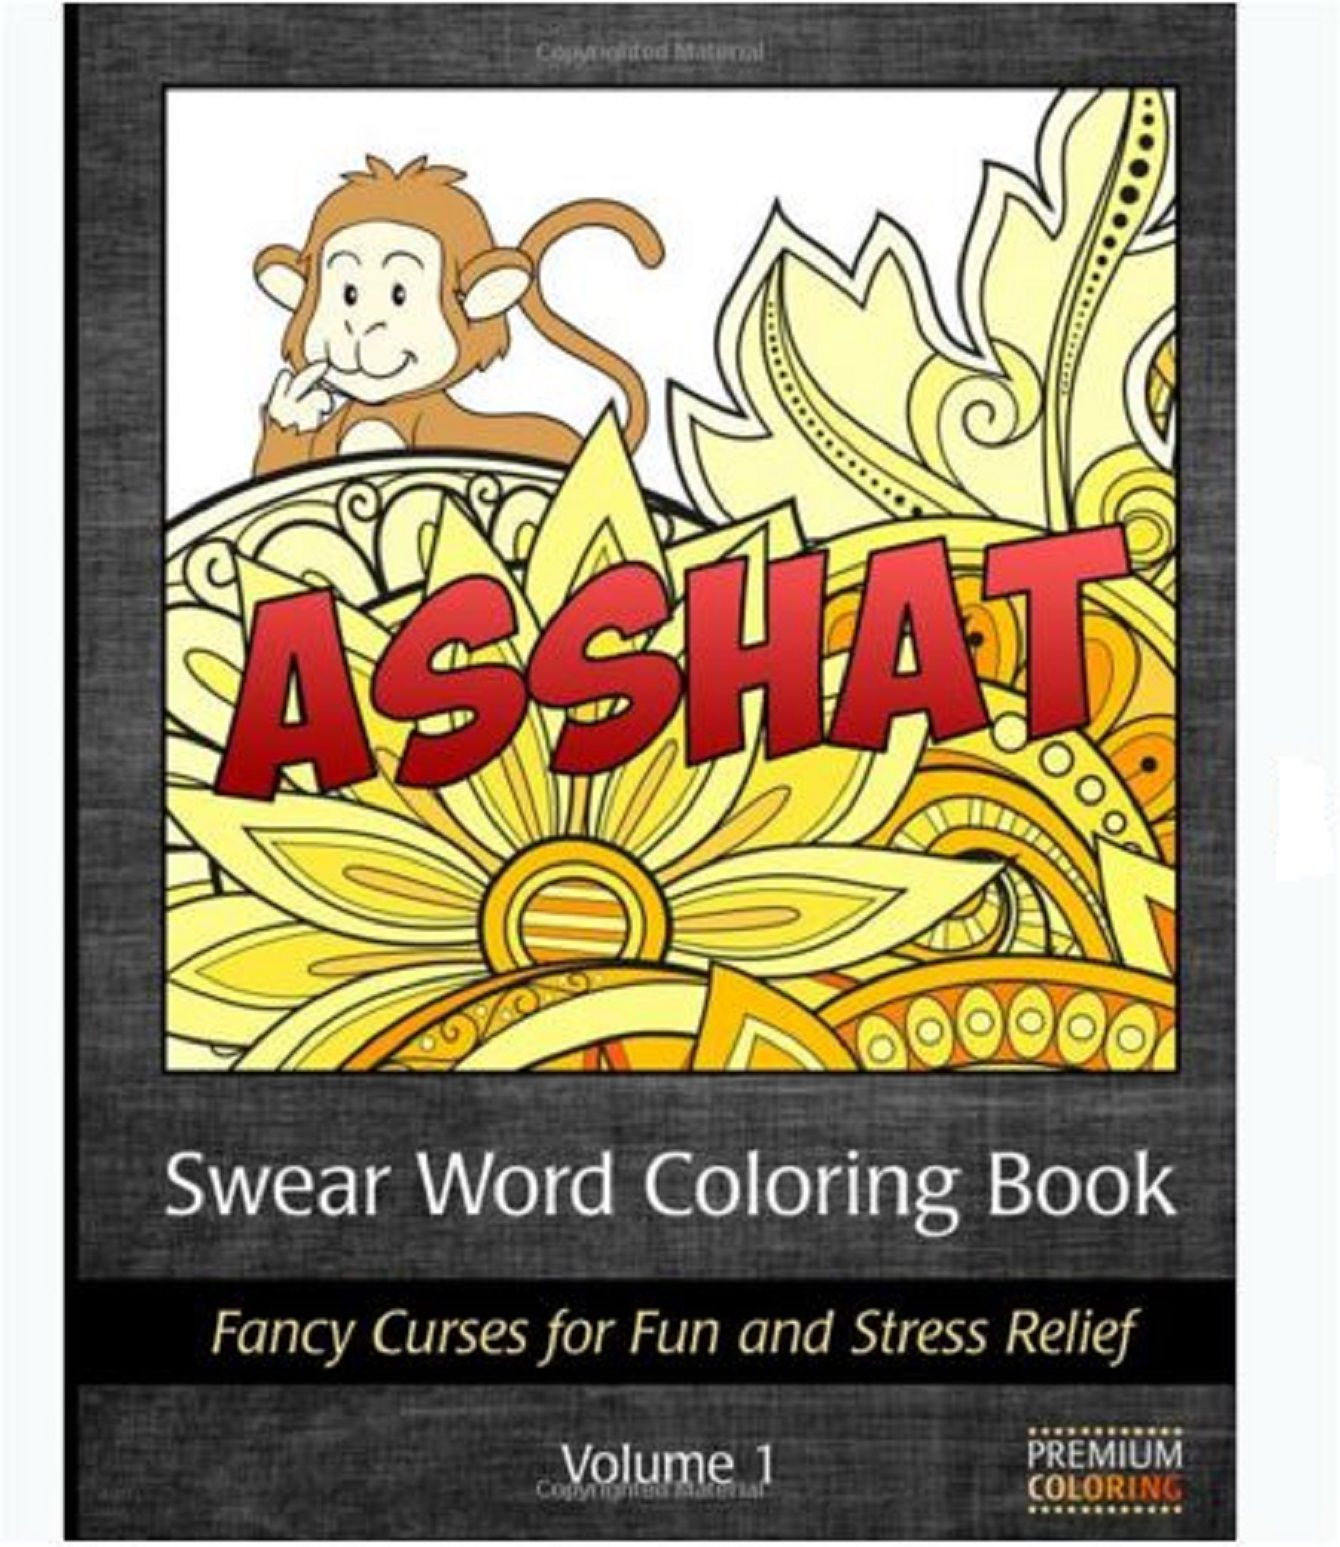 Coloring Book For Adults Swear Words Design Fancy Curses Stress Relief Pattern